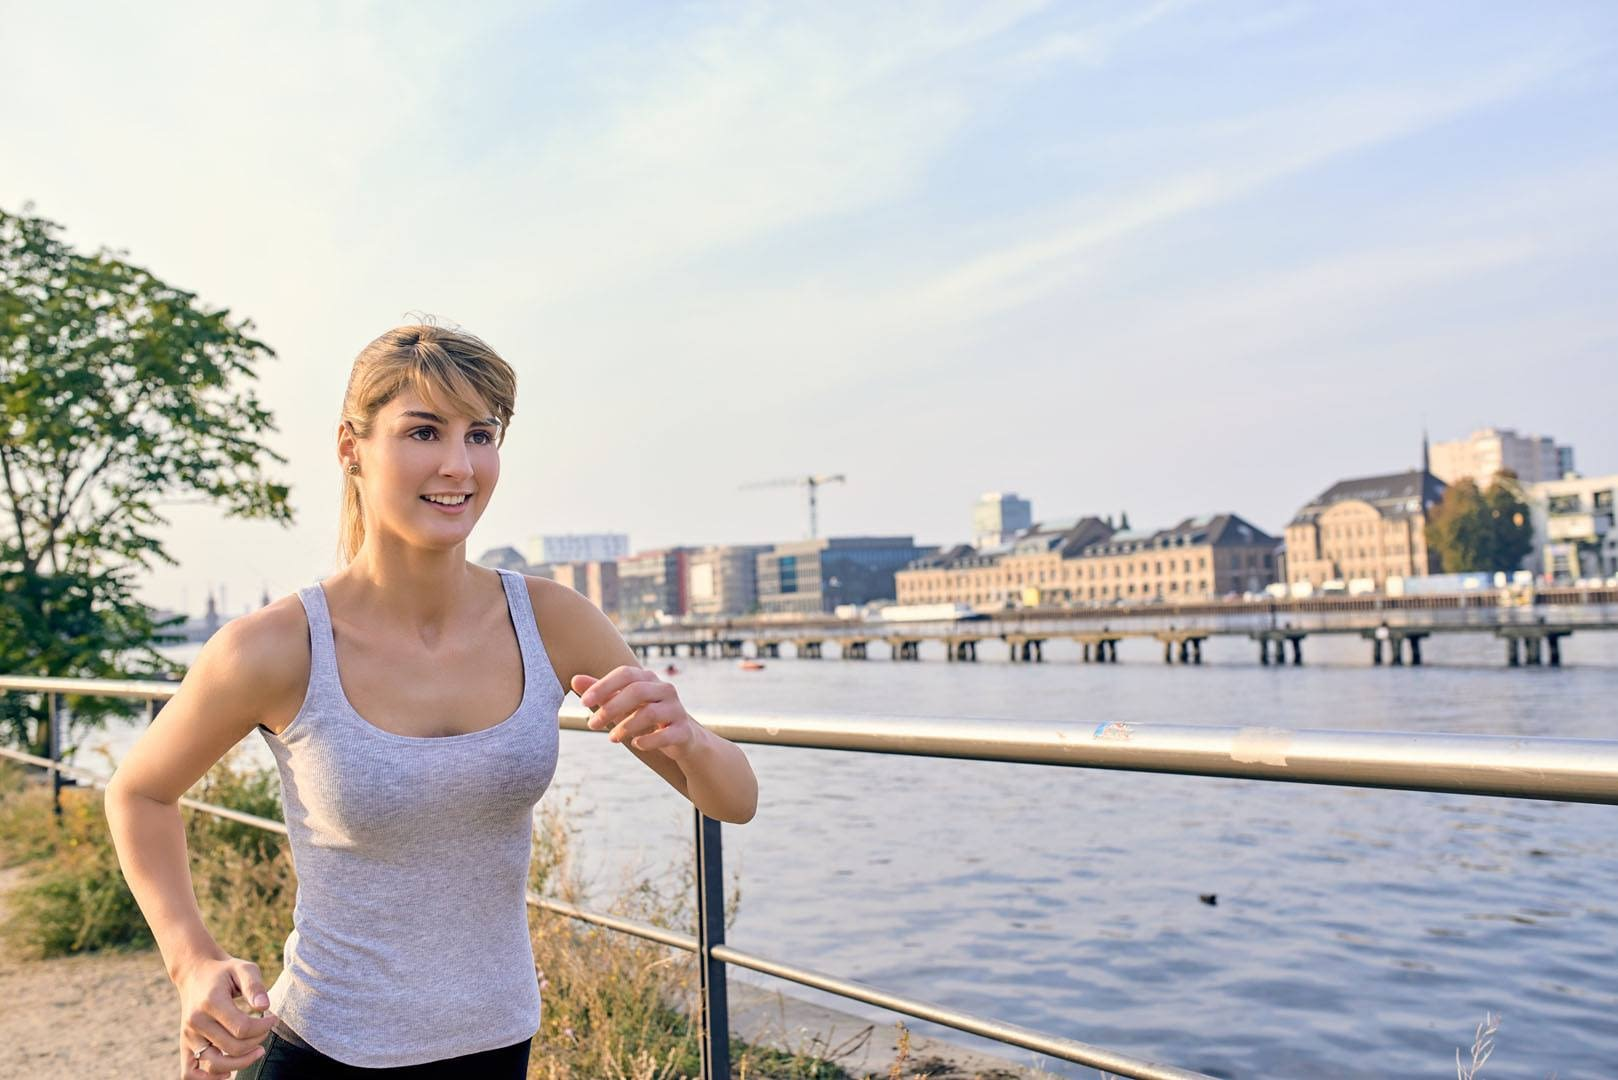 Sport & Lifestyle Editorial: Running along the Spree